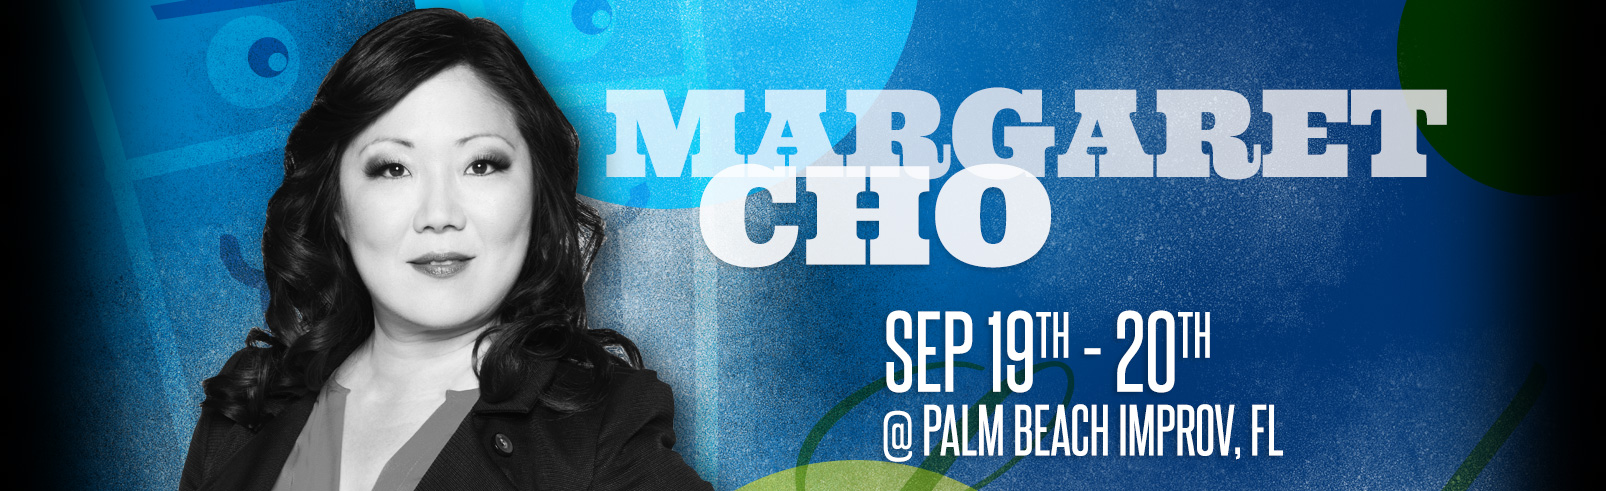 Margaret Cho @ Palm Beach Improv